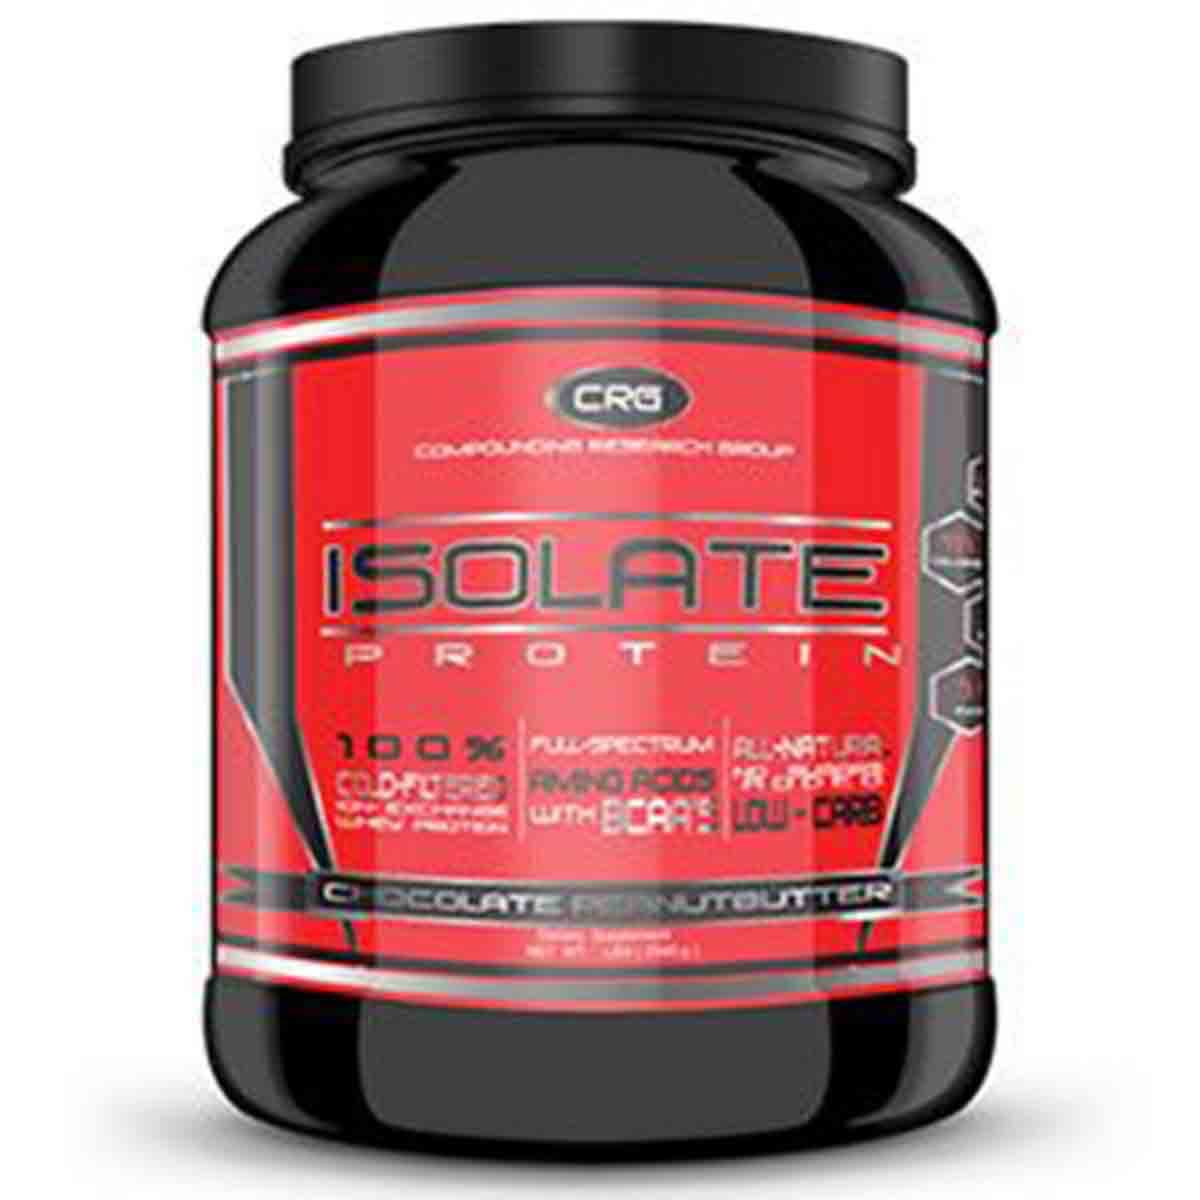 Nutrition Labz CRG Isolate Protein